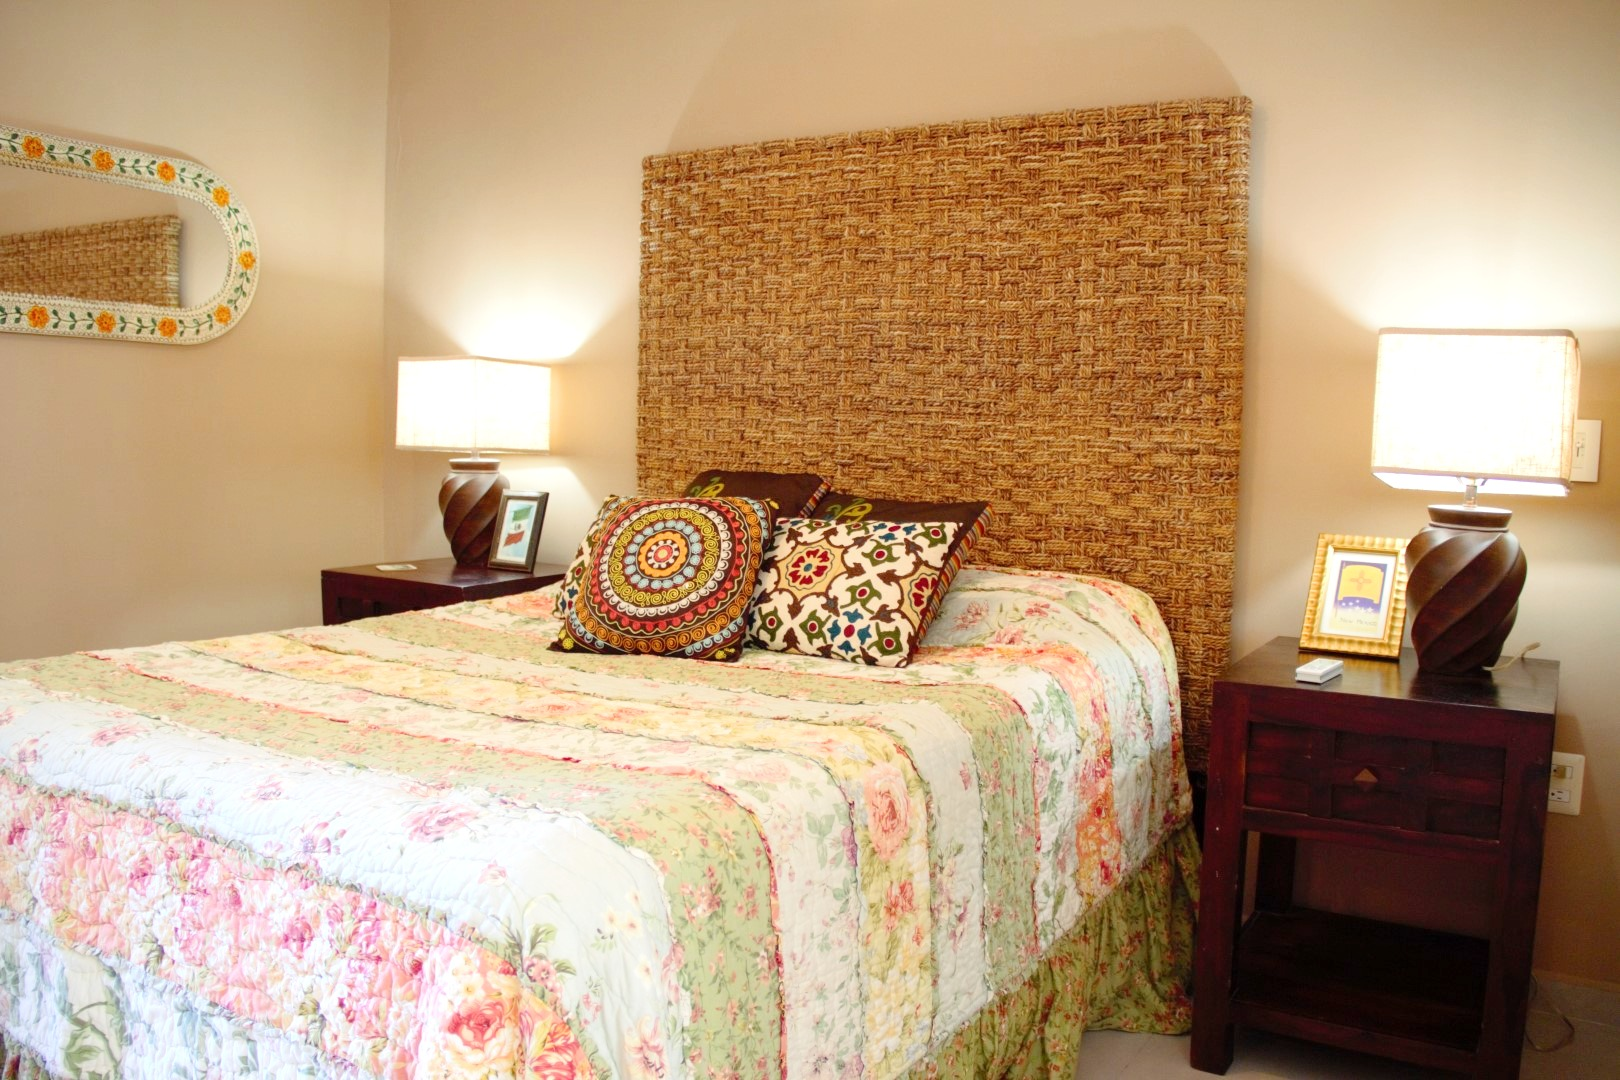 Second bedroom with beautiful decor.